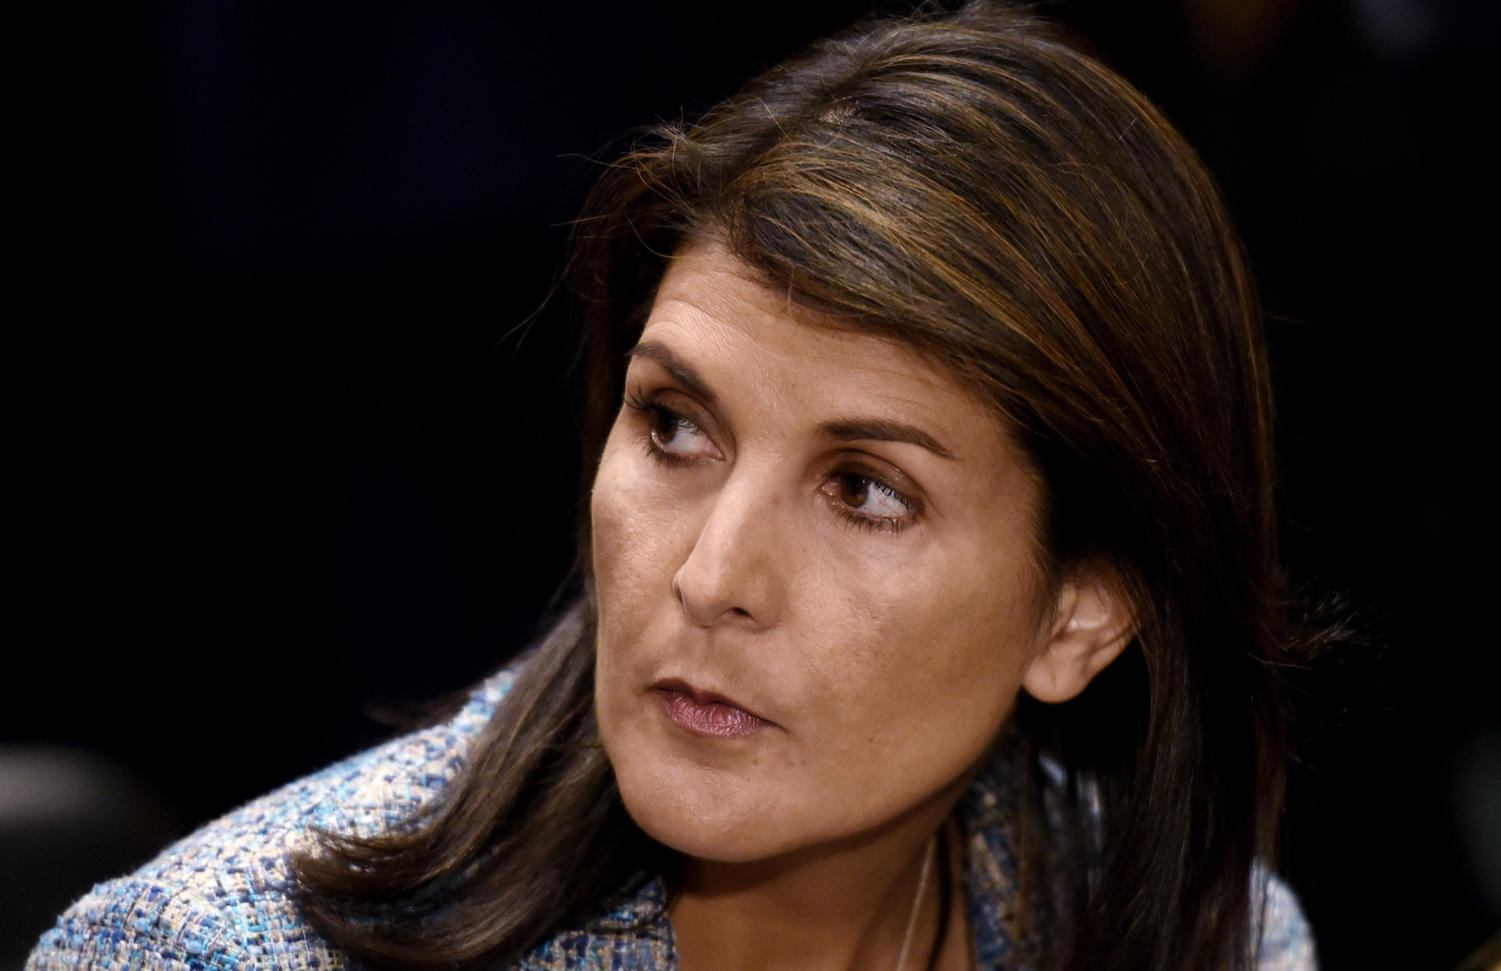 U.N. ambassador Nikki Haley attends Mike Pompeo's confirmation hearing before the Senate Foreign Relations Committee on April 12, 2018 in Washington, D.C. Haley has resigned, White House officials said. (Olivier Douliery/Abaca Press/TNS)